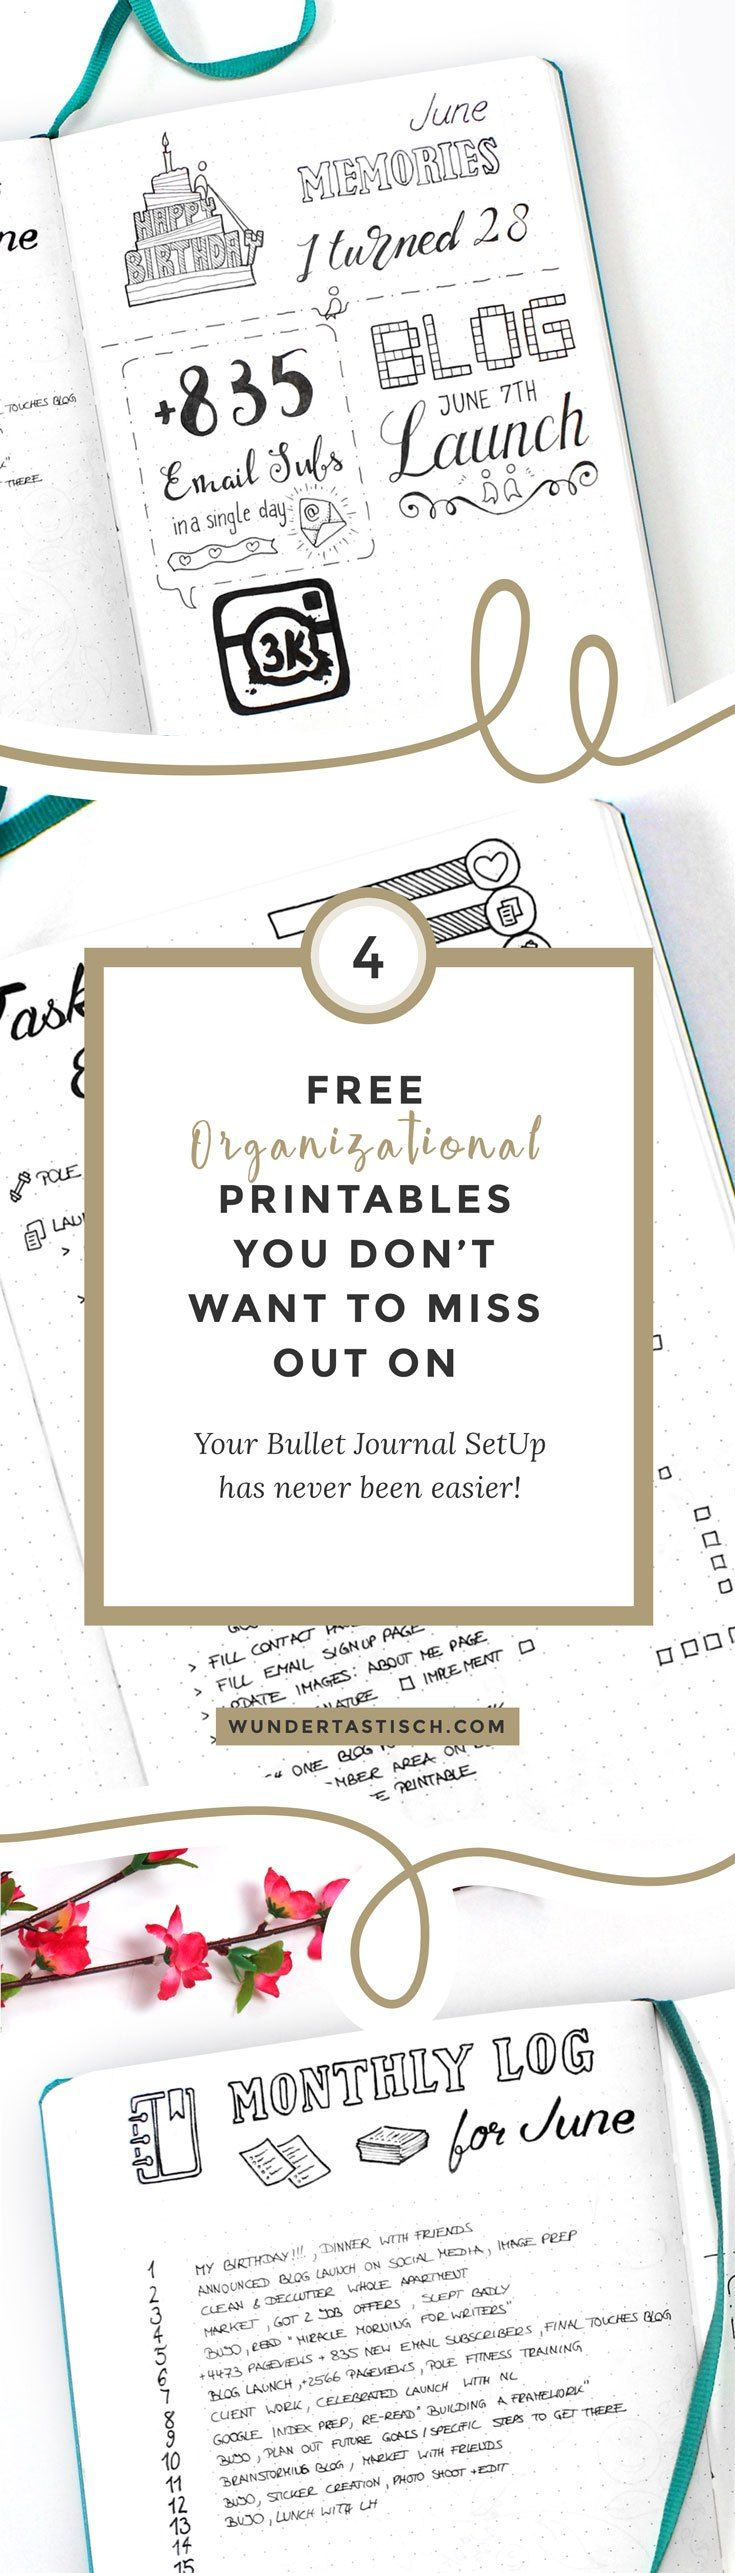 The March Edition of the Free Organizational Printables includes four bullet journal templates which are simple to use and an awesome way to get more organized. They fit your A5 bullet journal or personal planner perfectly. And thanks to their black and white design they can fit any color scheme. Enjoy!